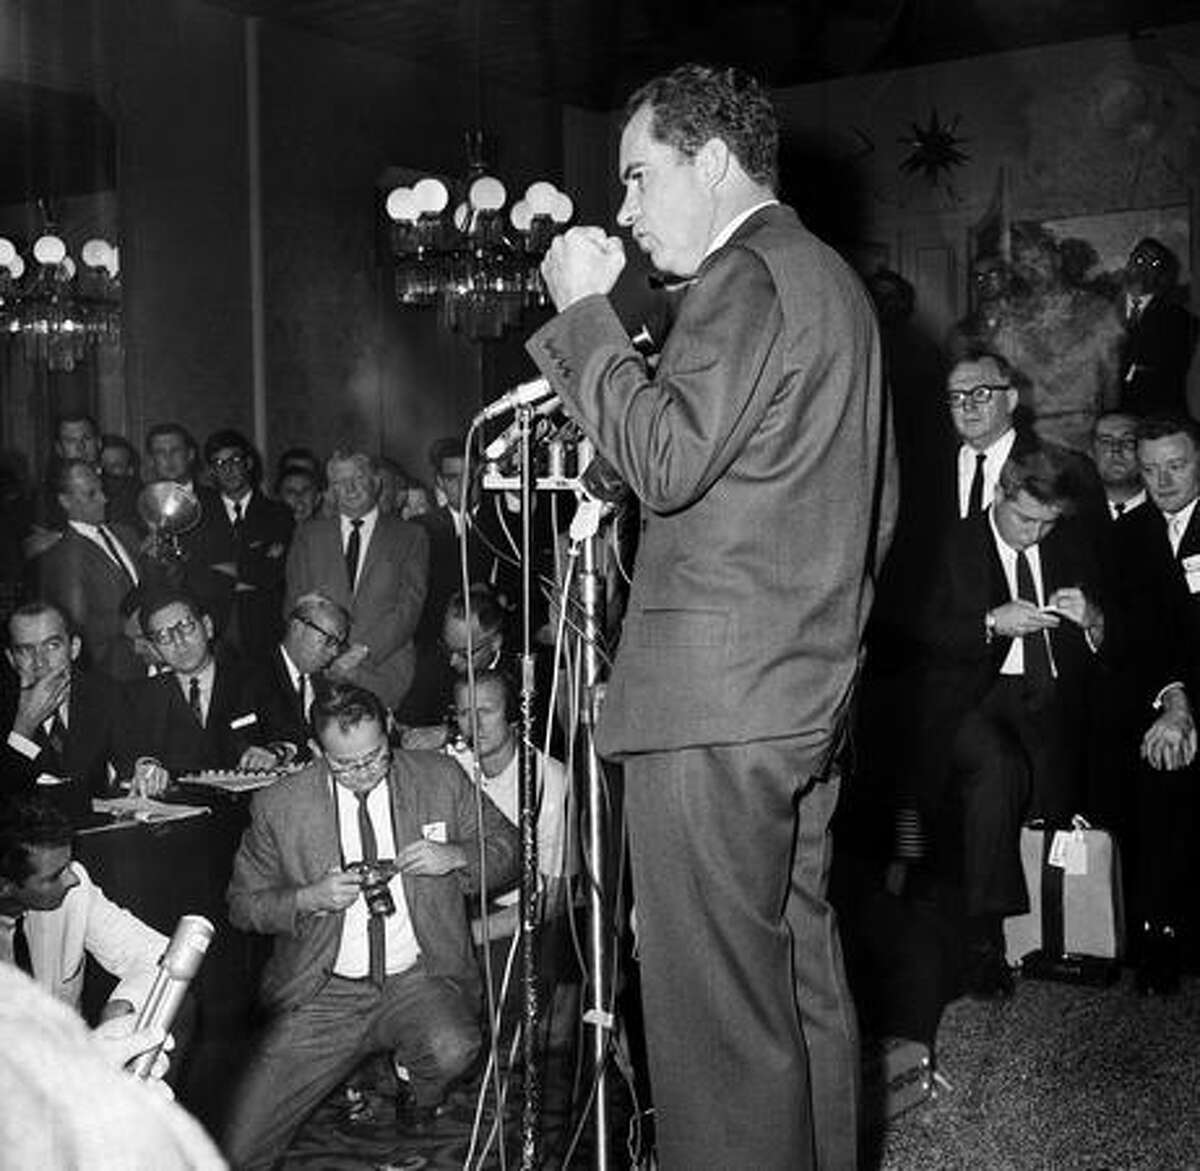 In this Nov. 7, 1962 file photo, former Vice President Richard M. Nixon shakes his fist as he makes remarks about news coverage of his campaign for governor as he conceded defeat in the race for the California governorship, in Beverly Hills. He told the large group of reporters: